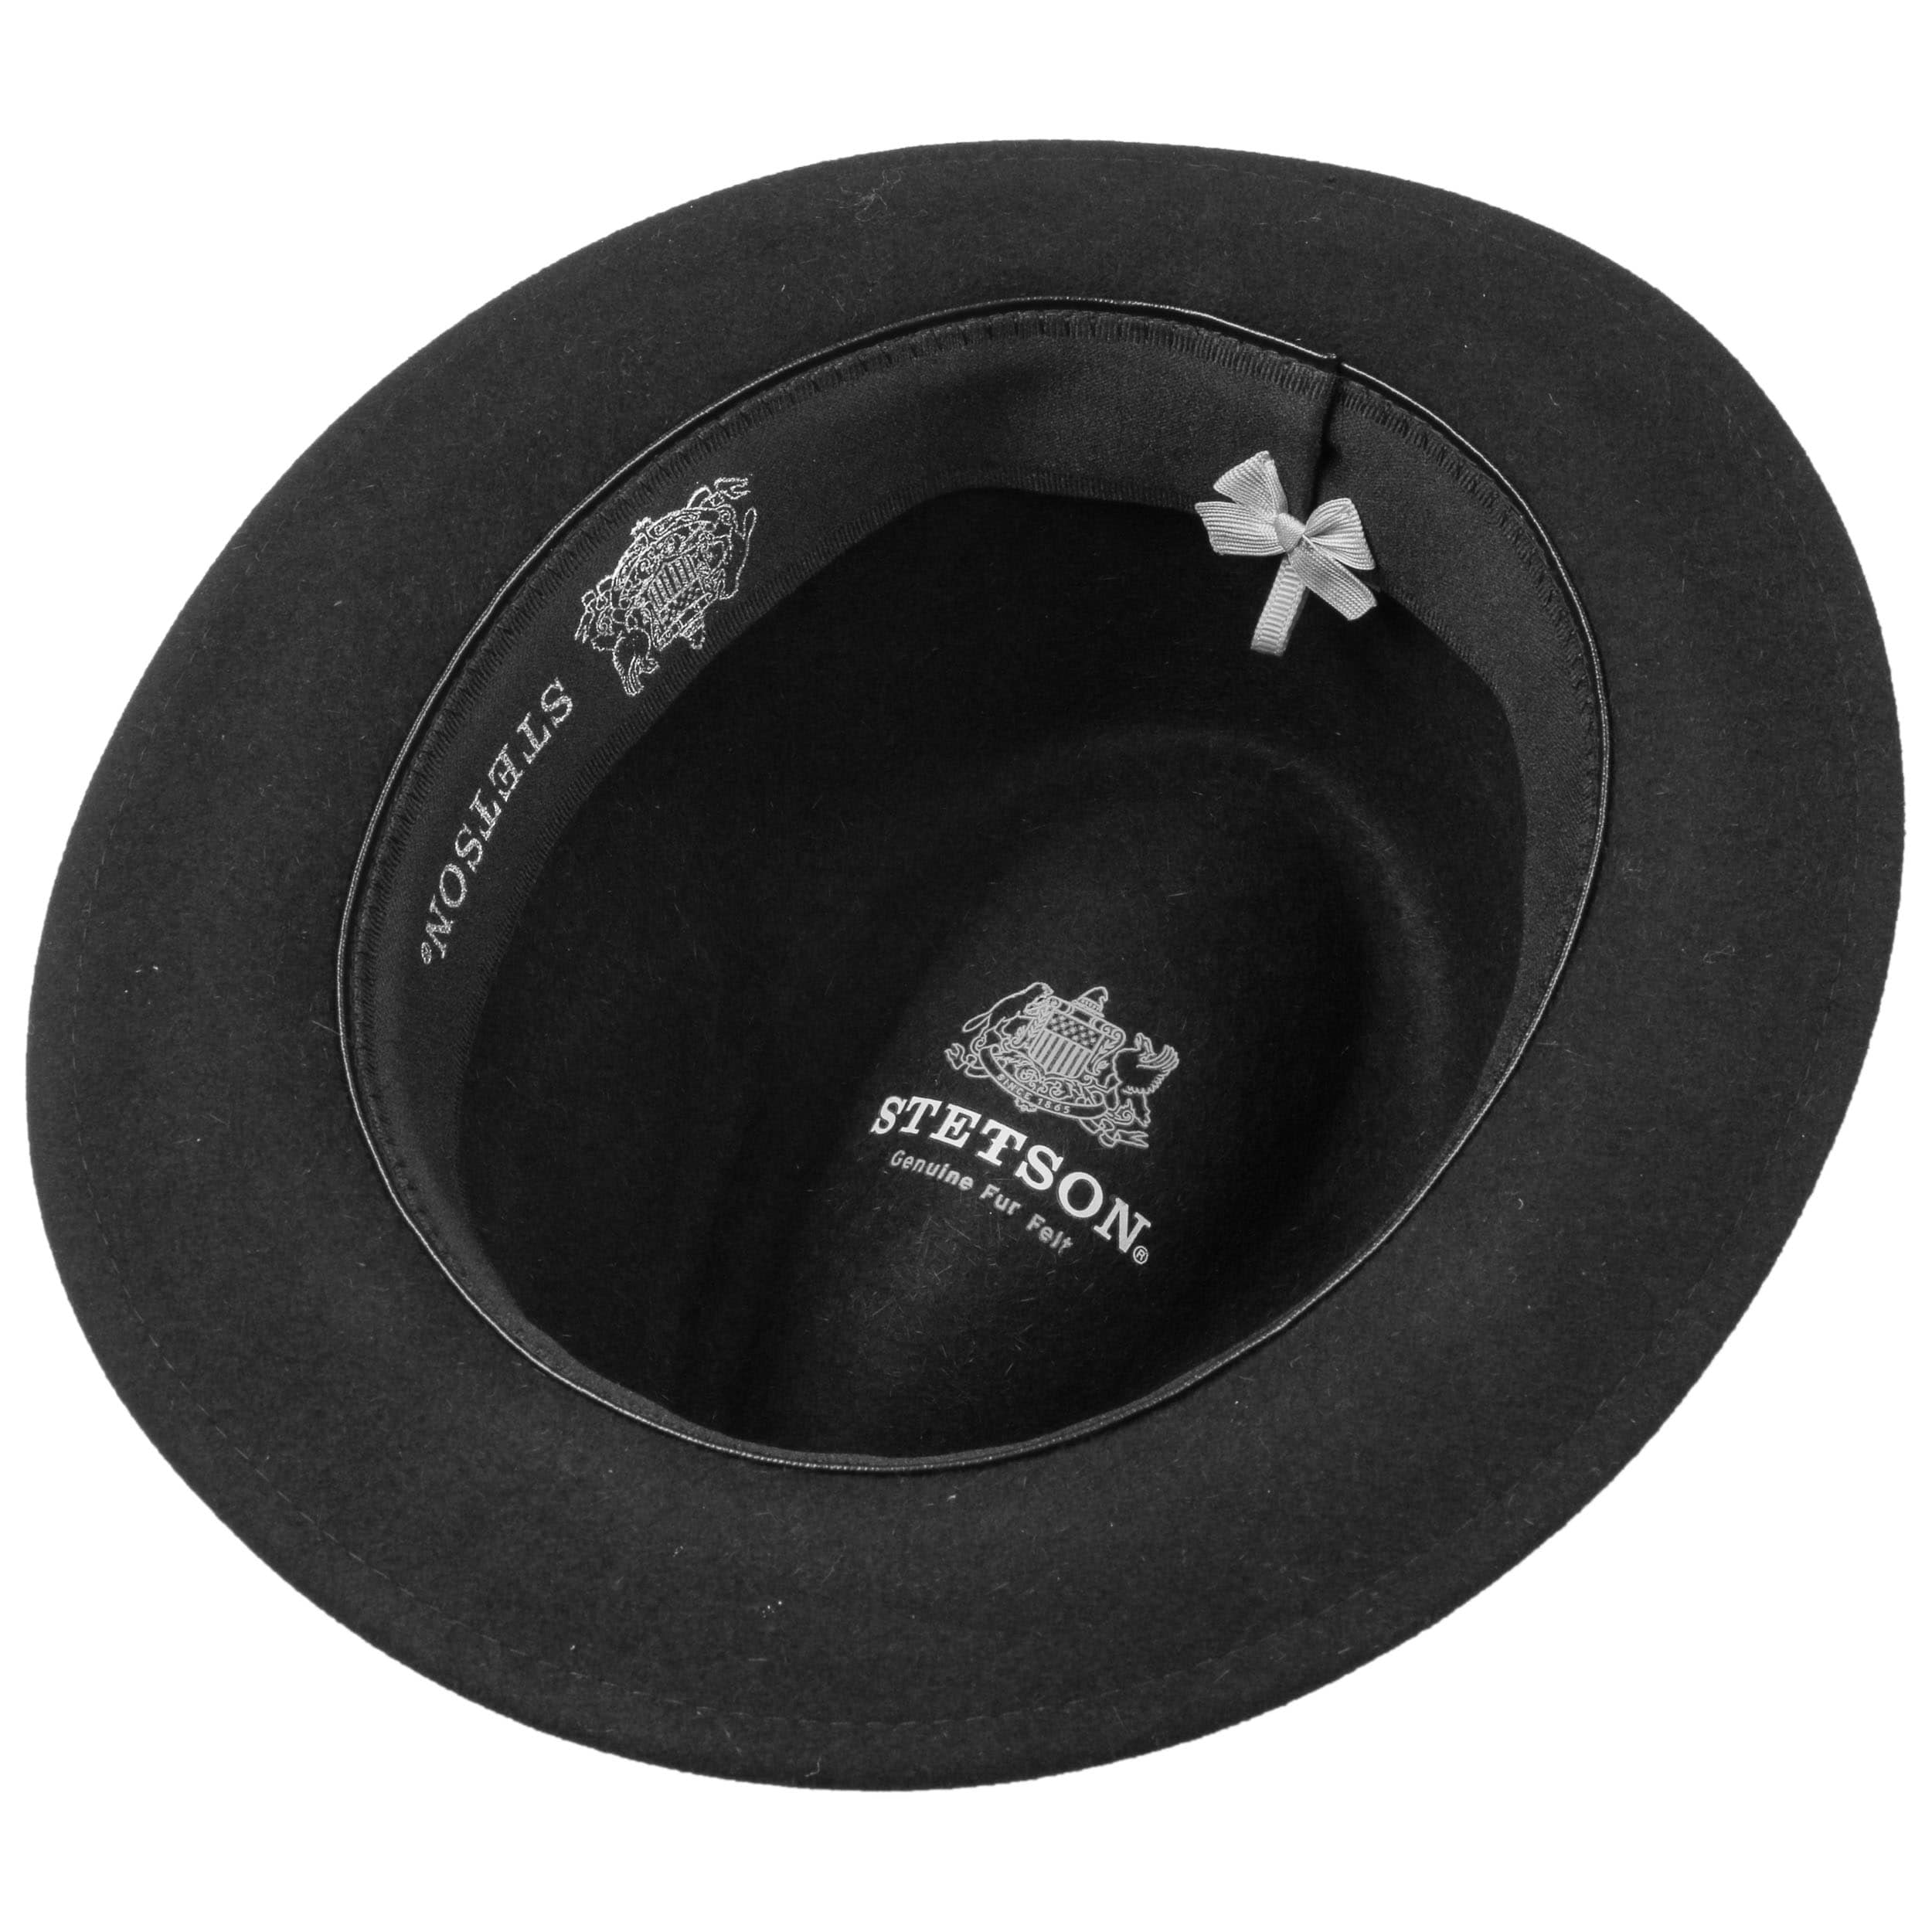 d98eed30274 ... Marico Player Hat Fur Felt Hat by Stetson - black 2 ...